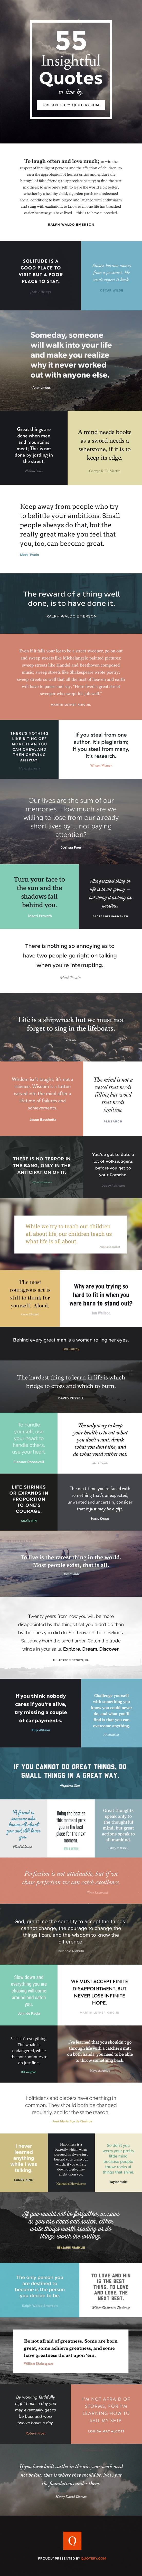 Inspirational quotes to live by #infographic